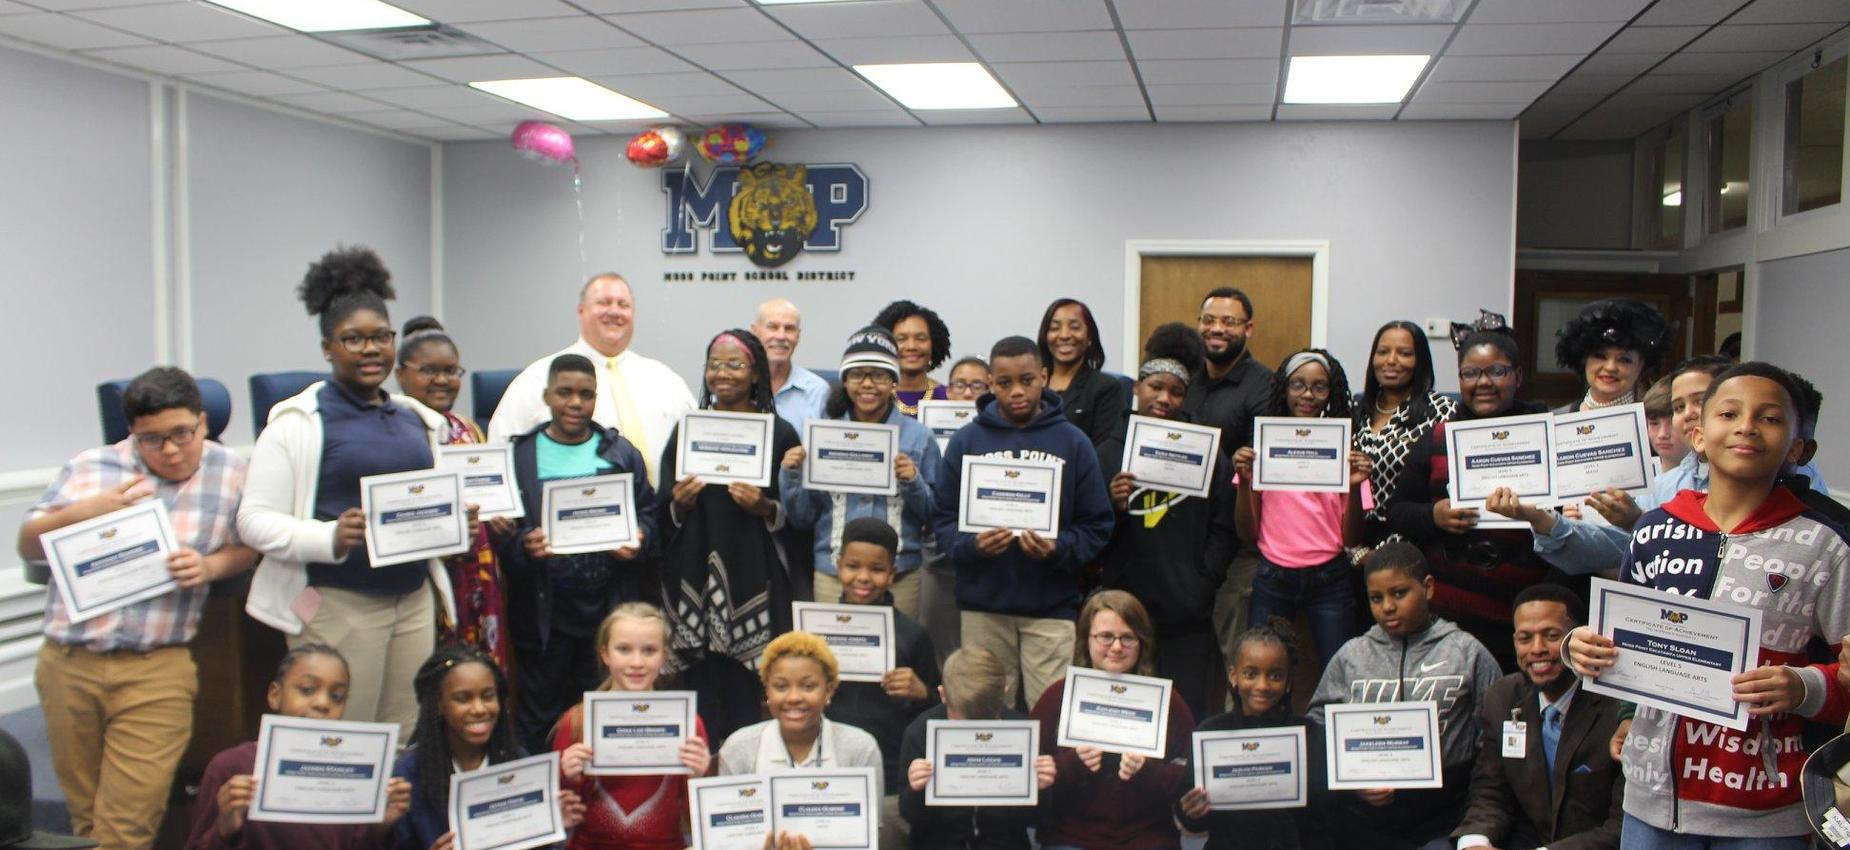 students at board meeting receiving recognition